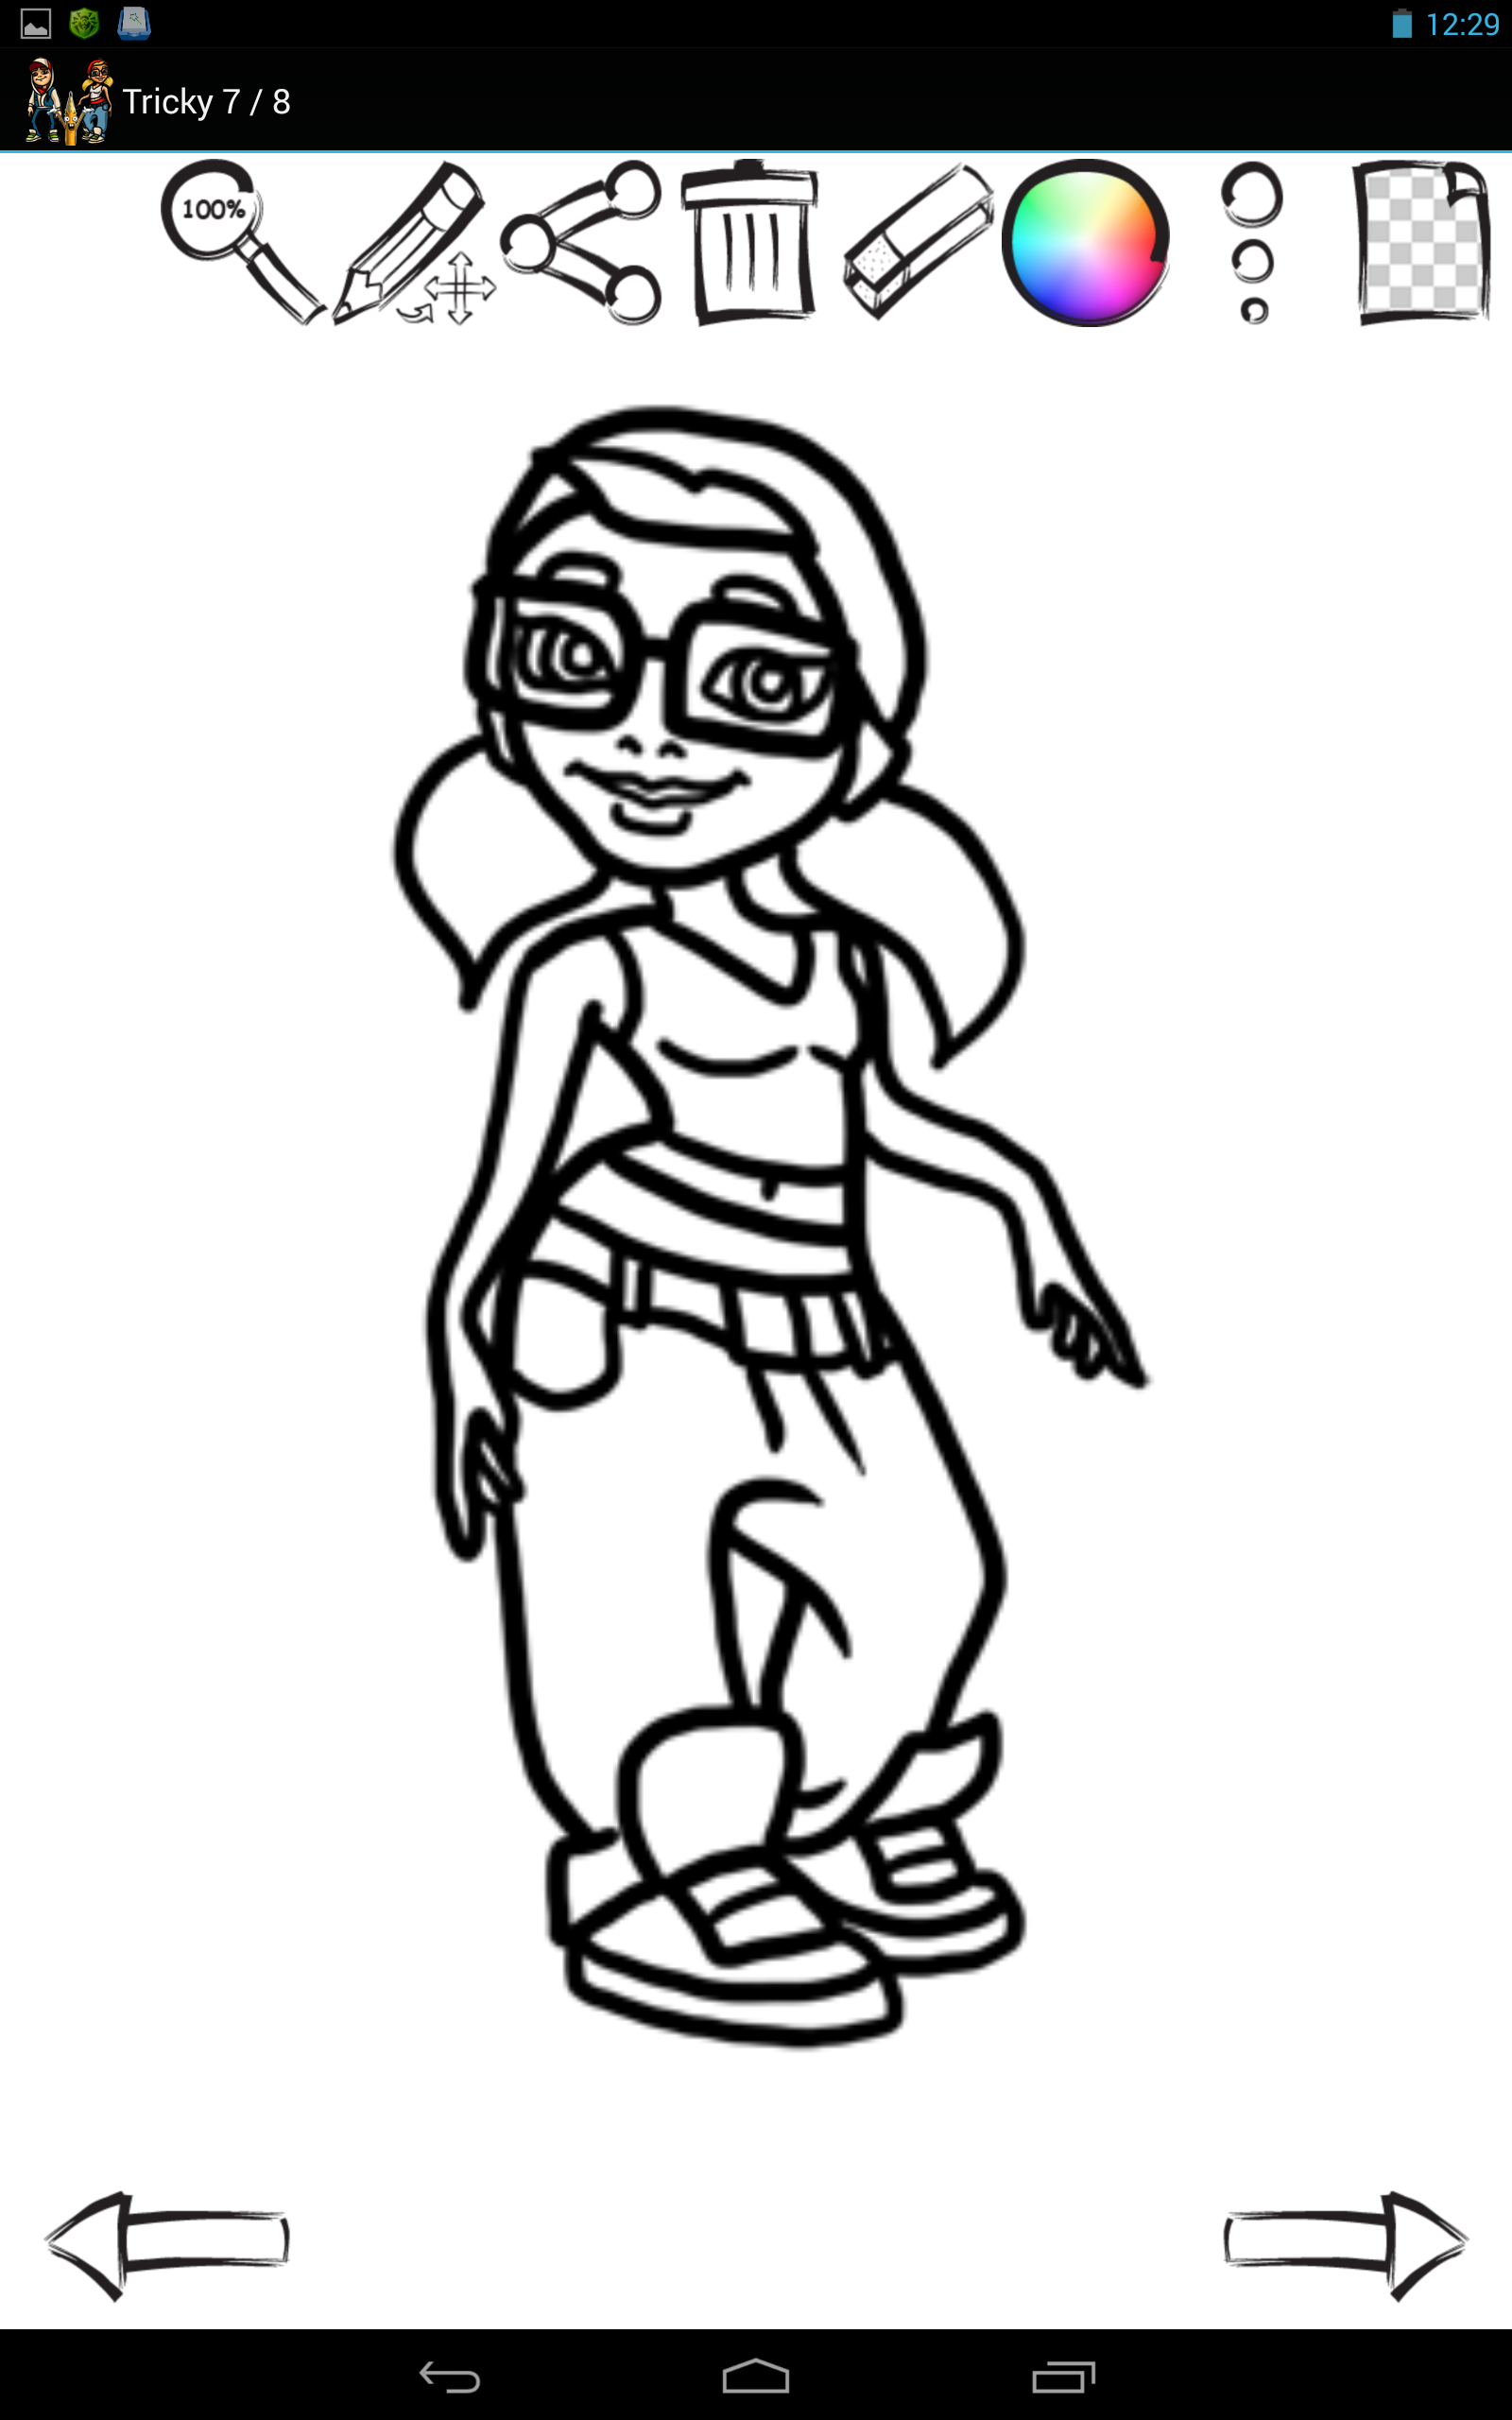 subway surfer coloring pages - photo#7